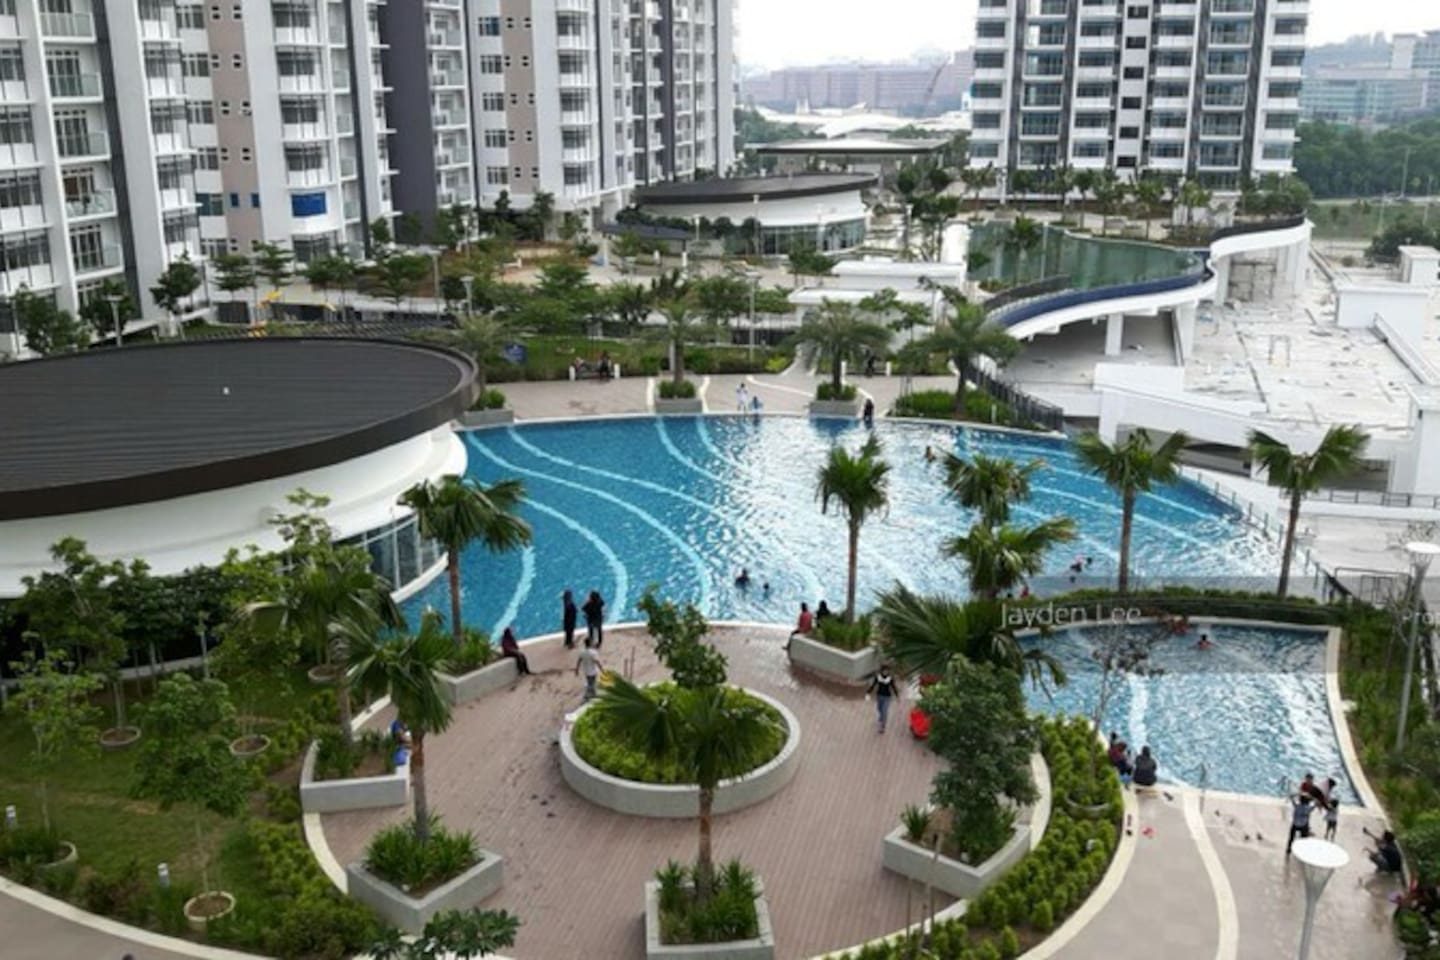 View from swimming pool area